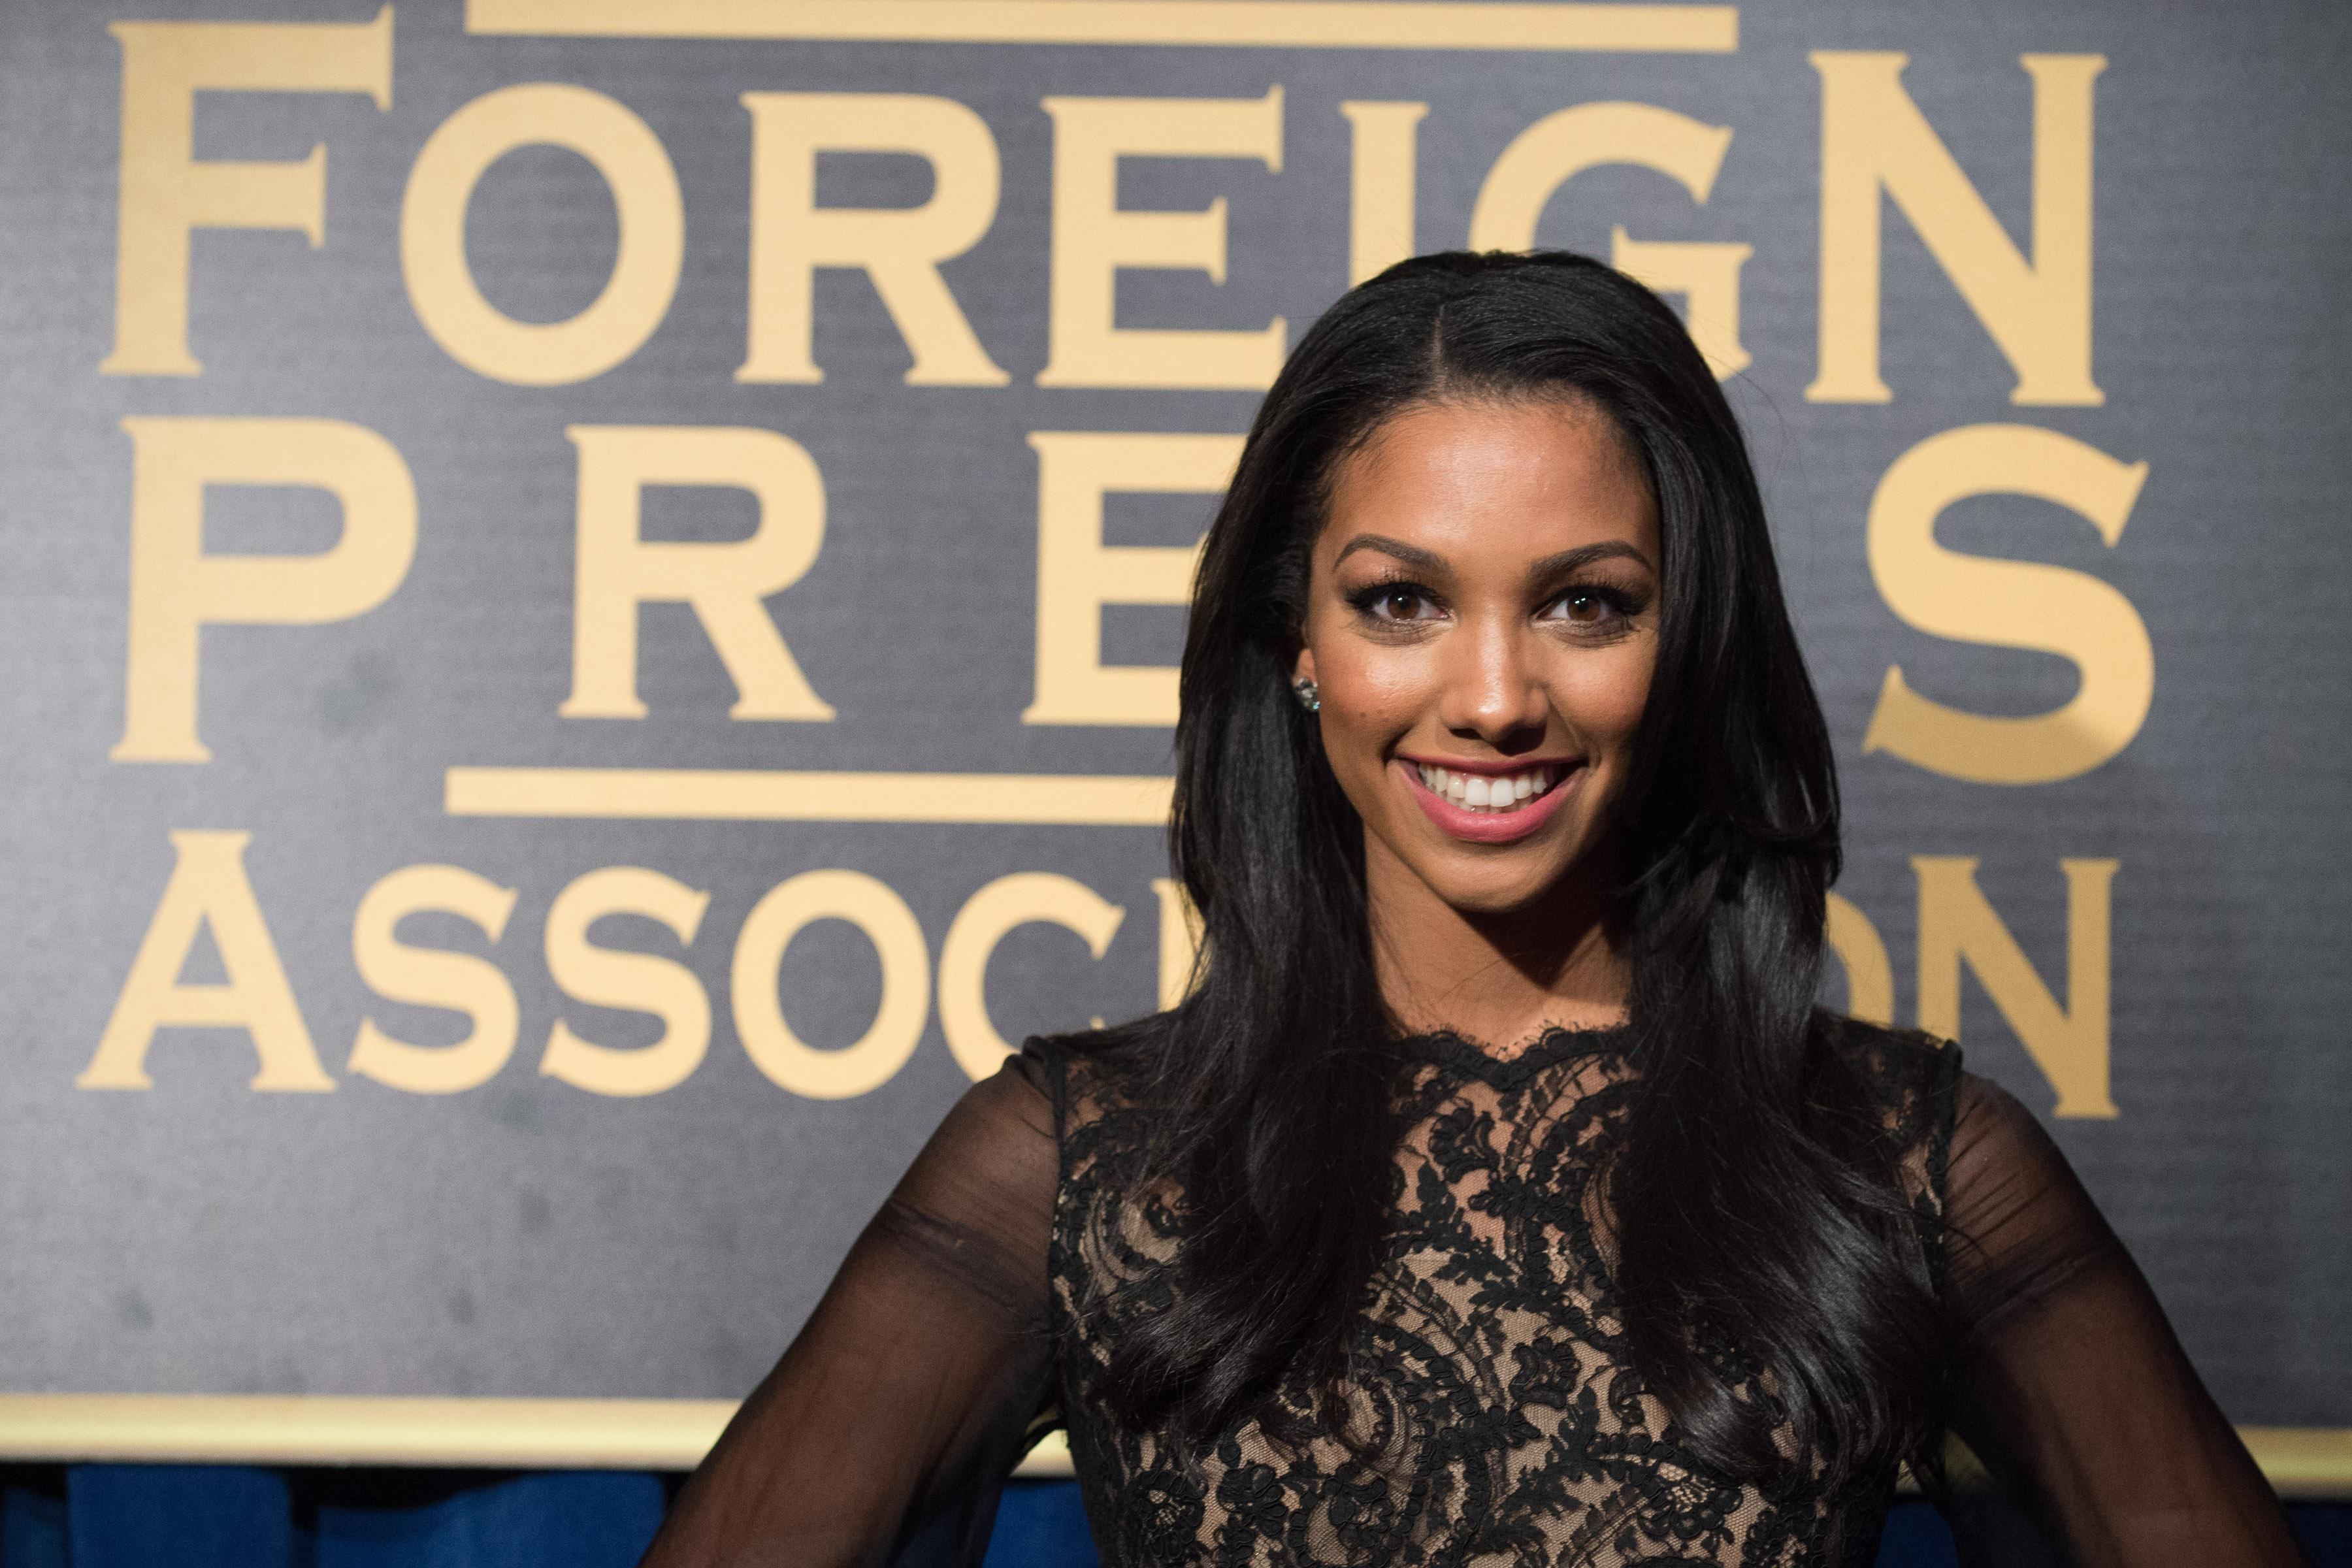 The Hollywood Foreign Press Association has selected Corinne Foxx as Miss Golden Globe 2016 for the 73rd Annual Golden Globe Awards set to air live on NBC on January 10, 2016. President Lorenzo Soria made the announcement on November 17, 2015 from Ysabel Restaurant in West Hollywood.